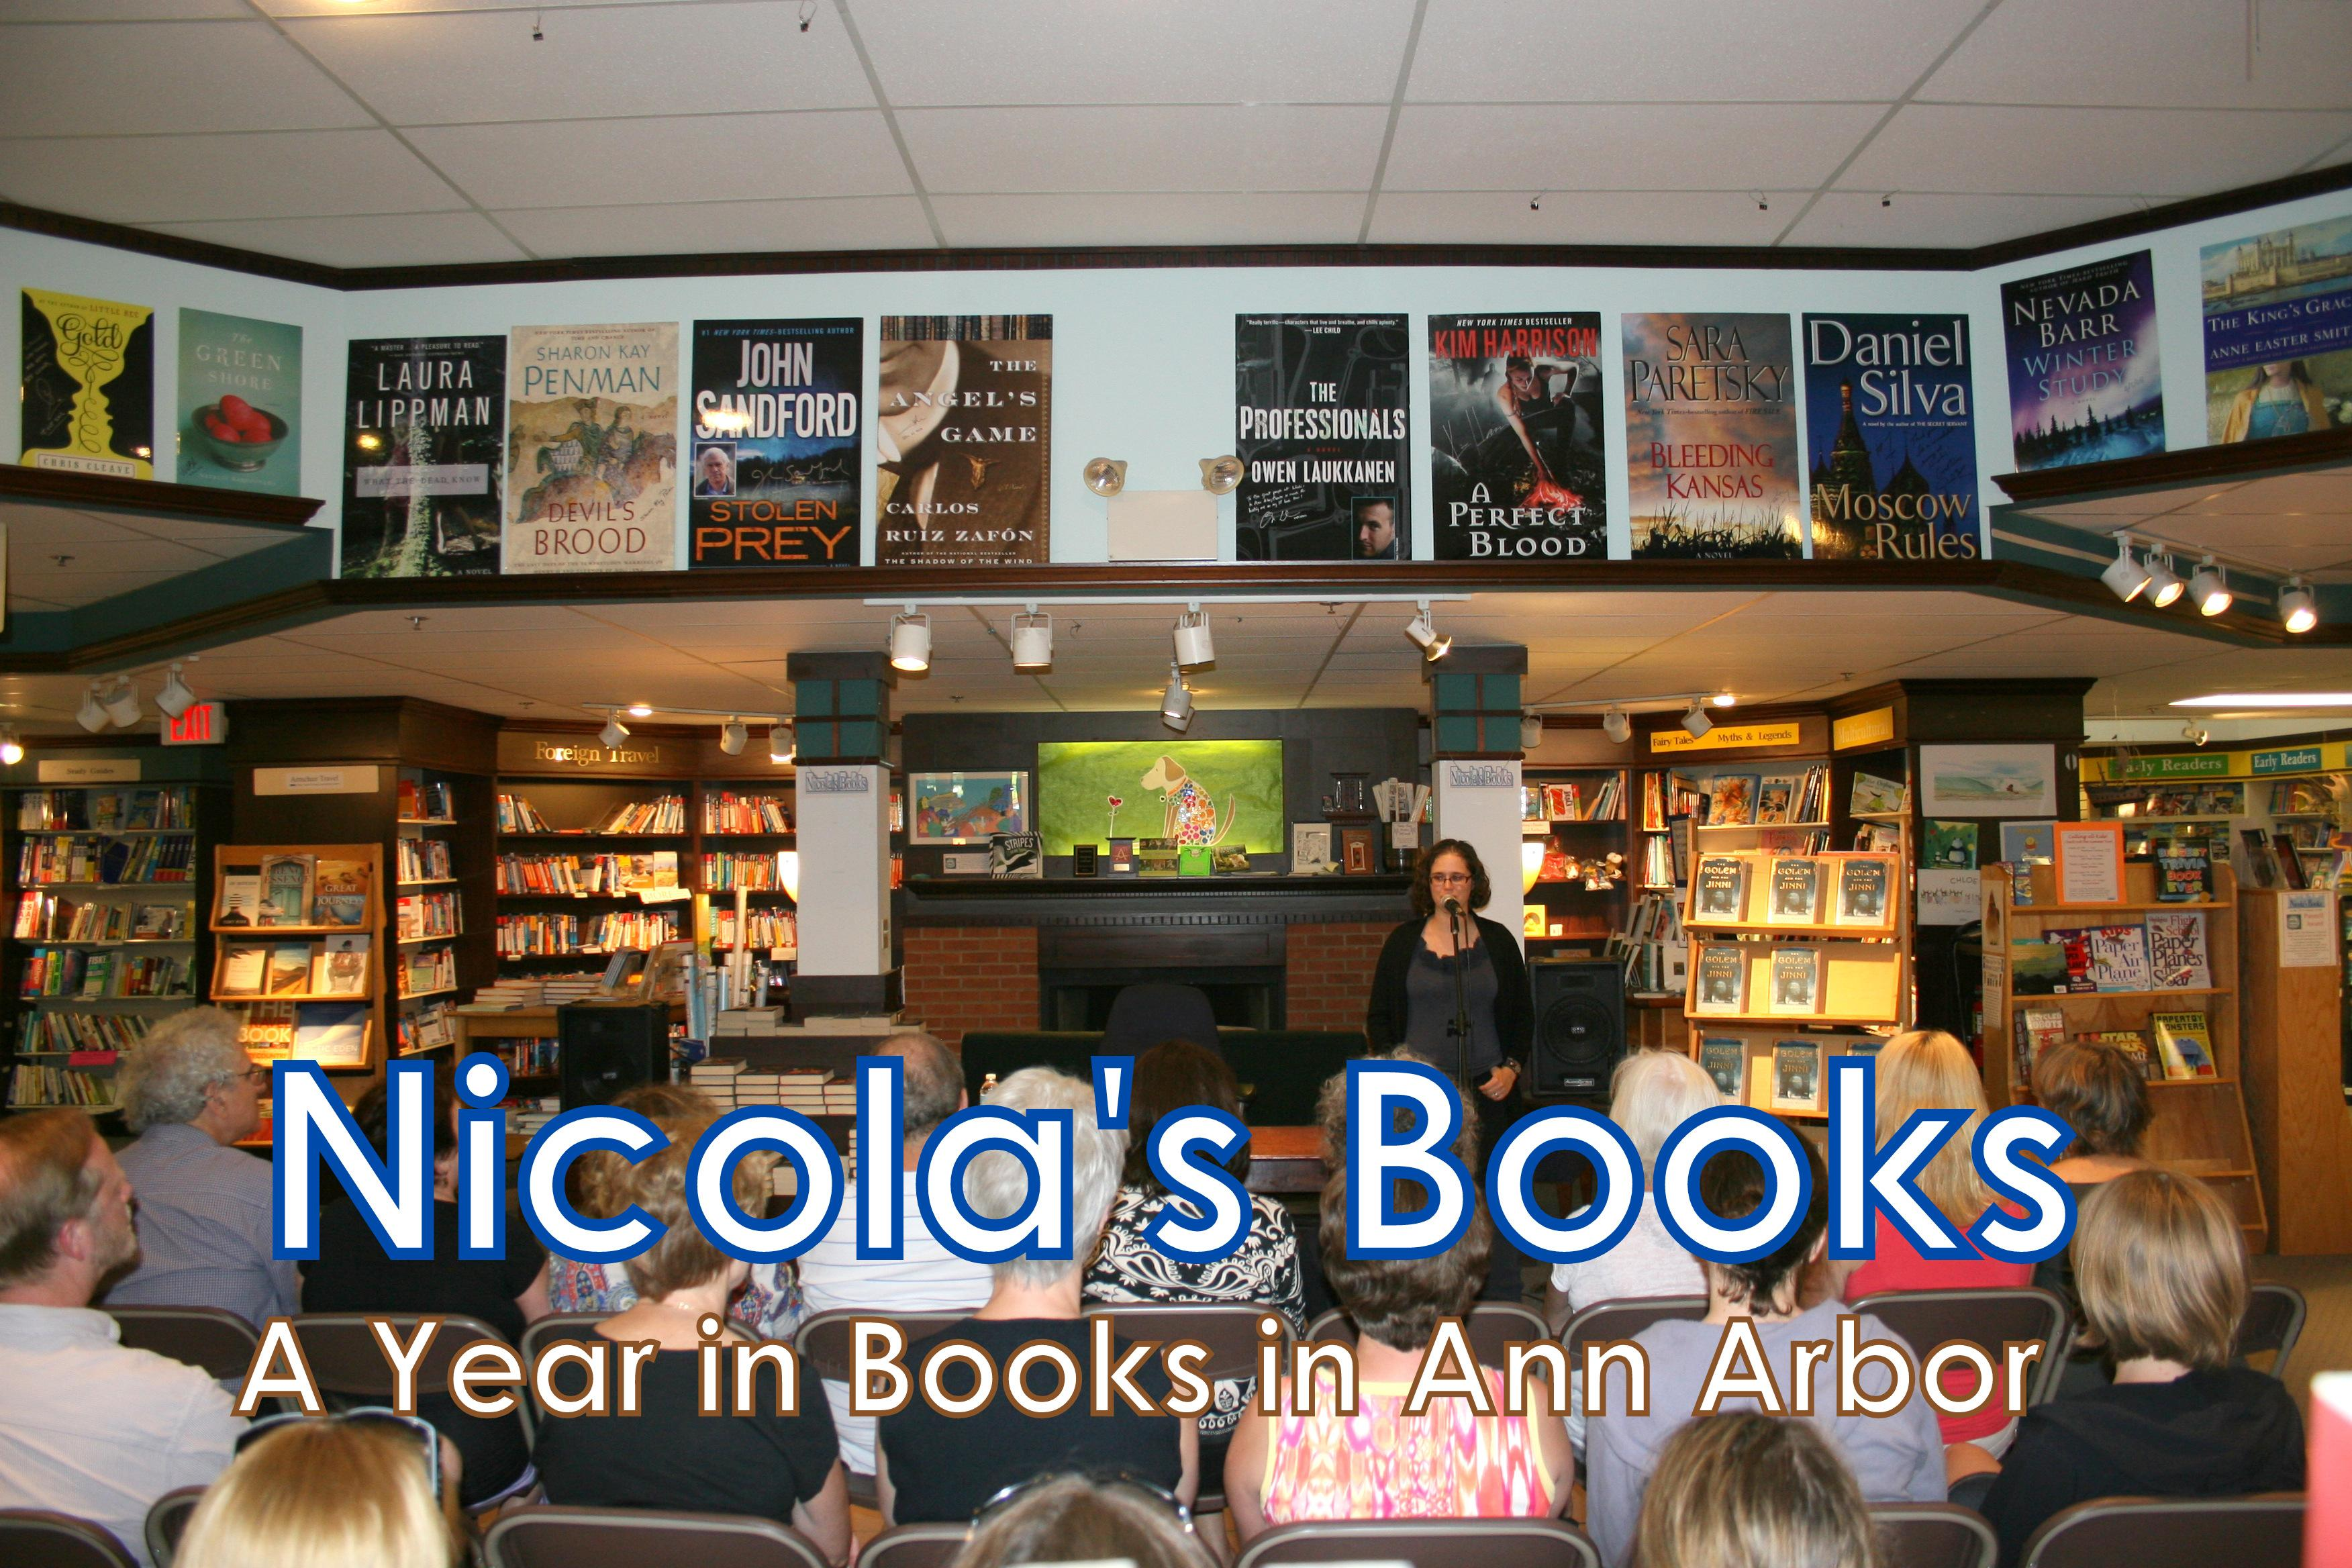 Nicola's Books - A Year in Books in Ann Arbor Calendar